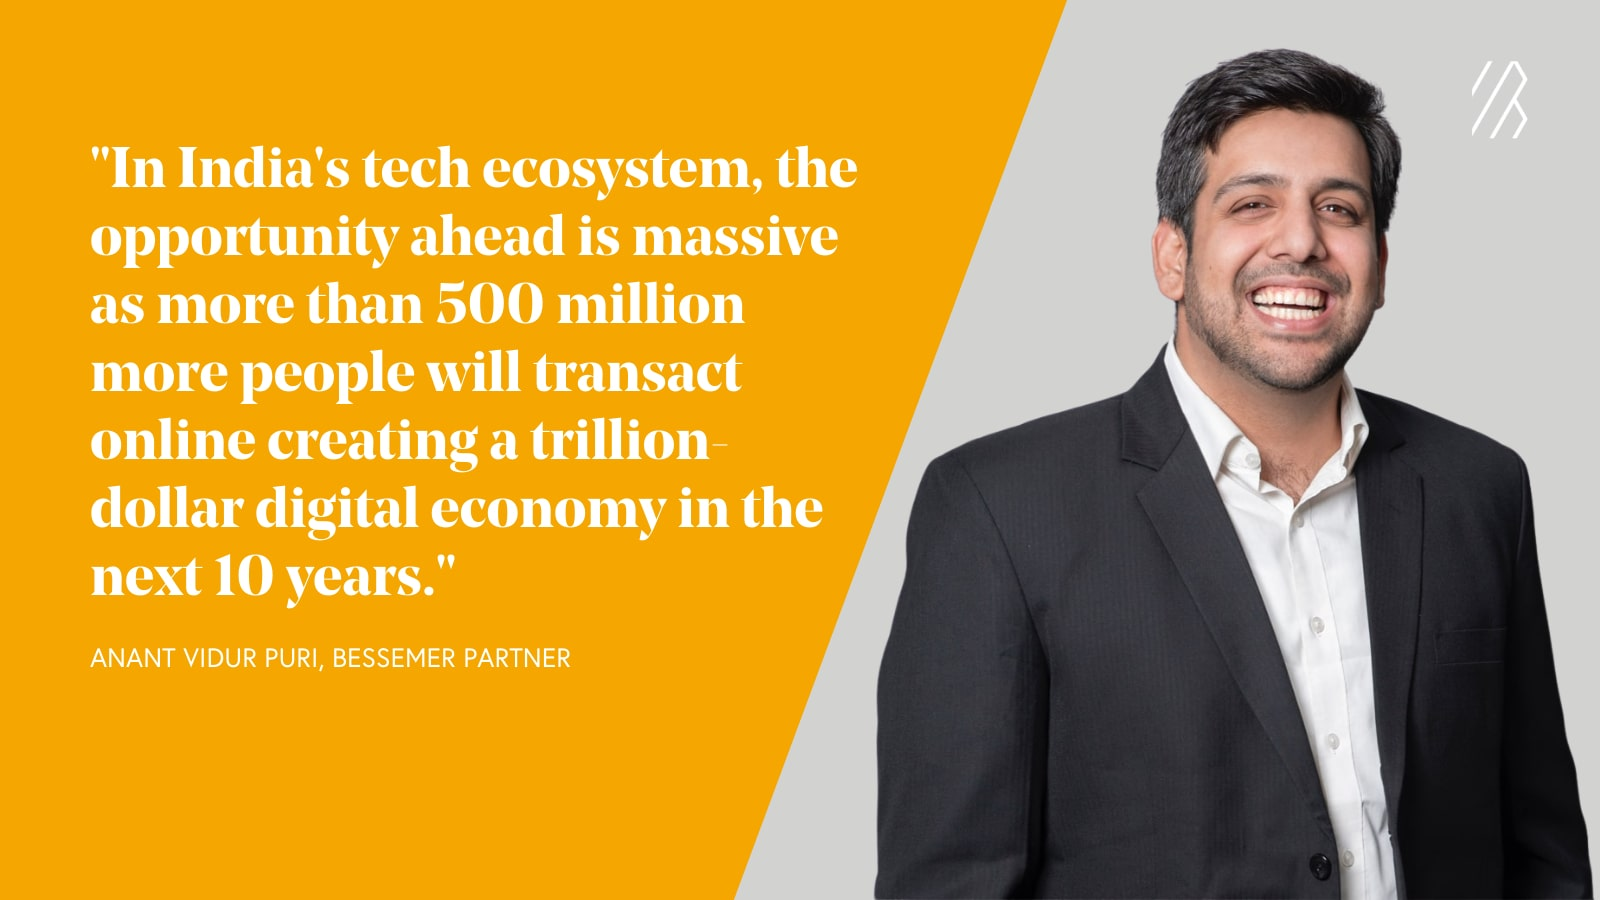 Photo of Anant Vidur Puri and text quote about India's tech ecosystem